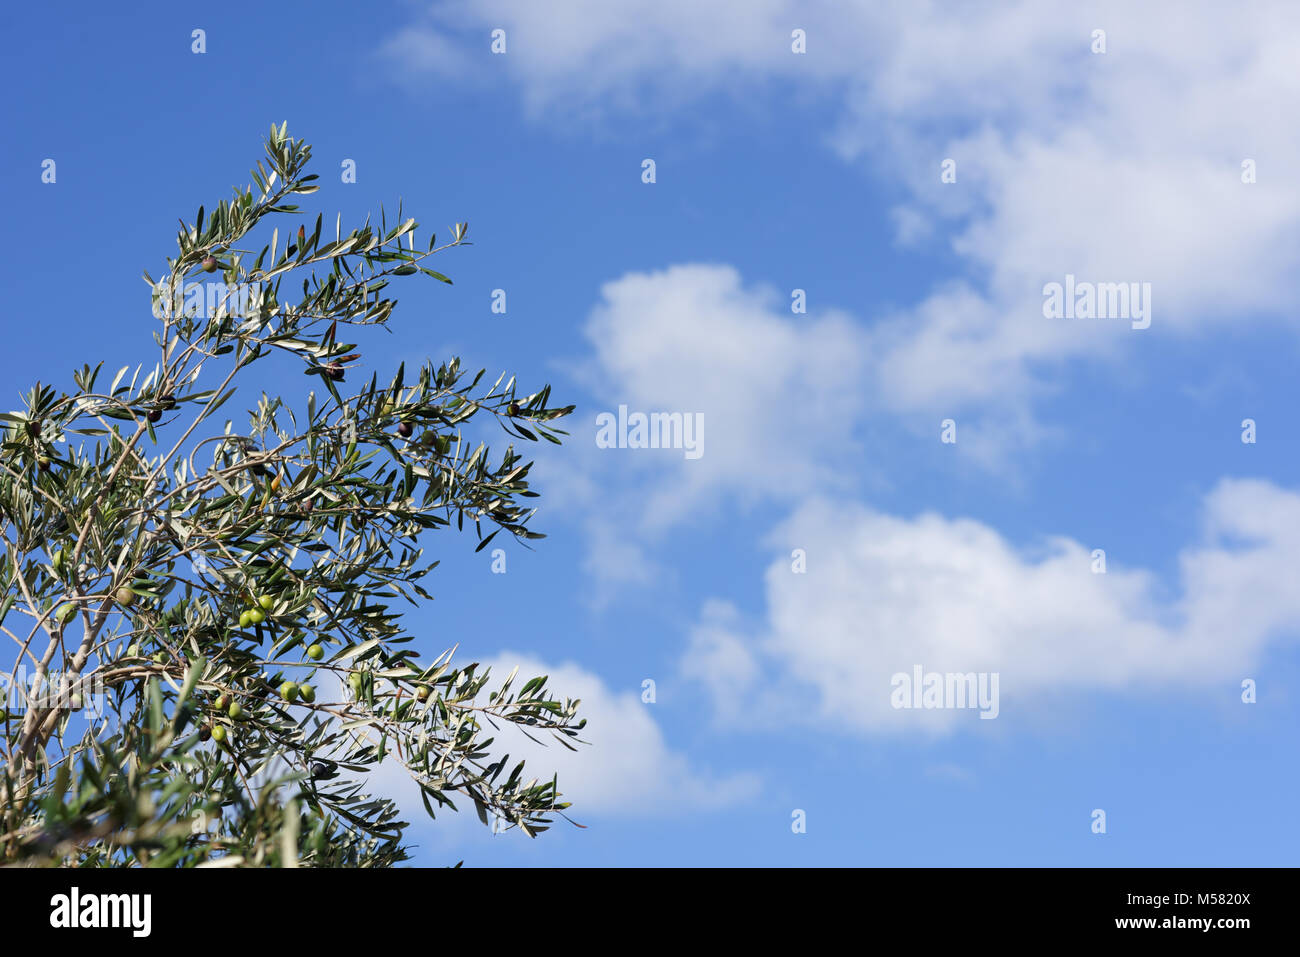 Green olives on a branches against blue sky - Stock Image